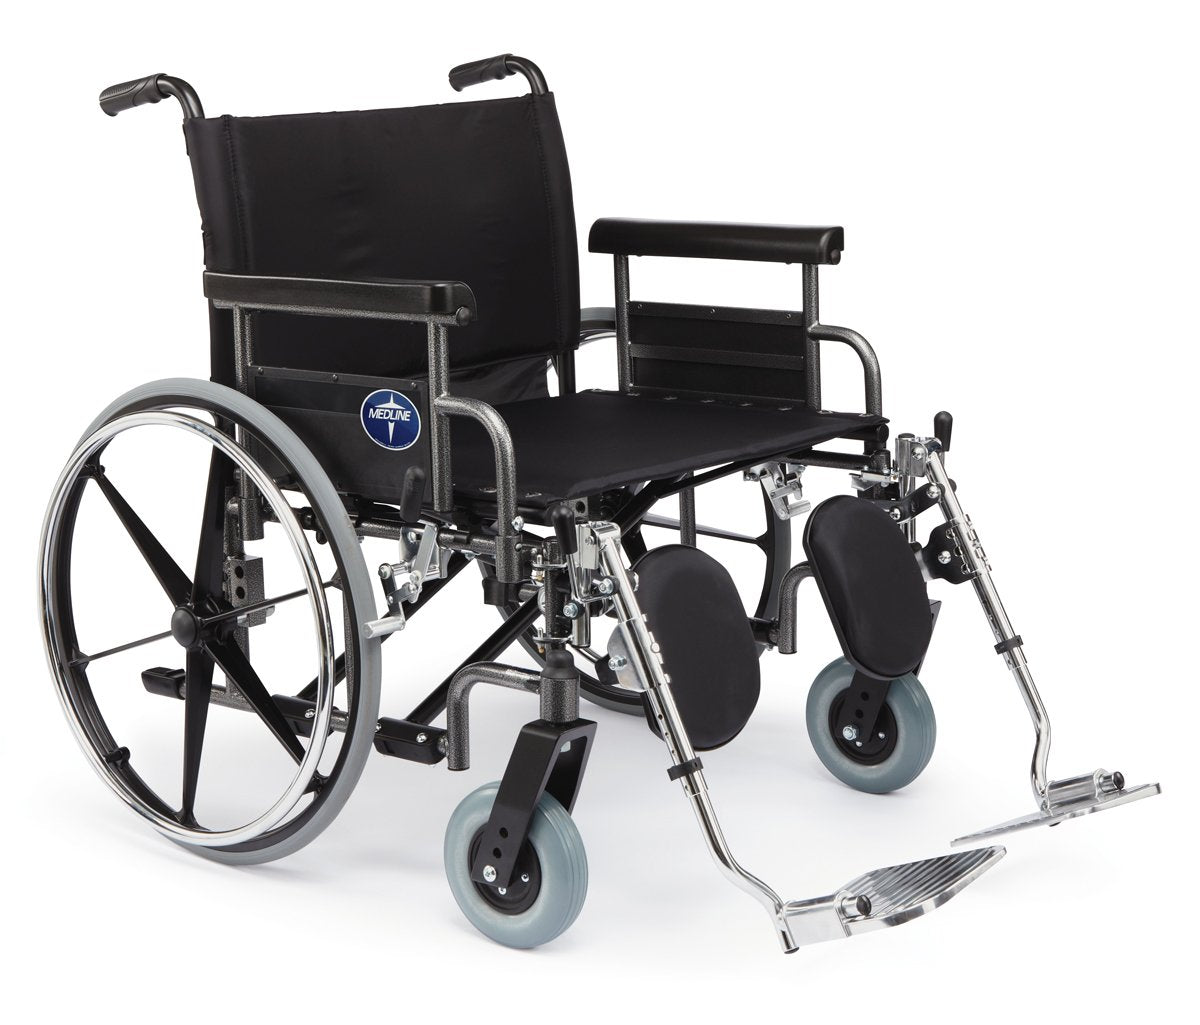 WIDE HEAVY DUTY STANDARD WHEELCHAIR-24""